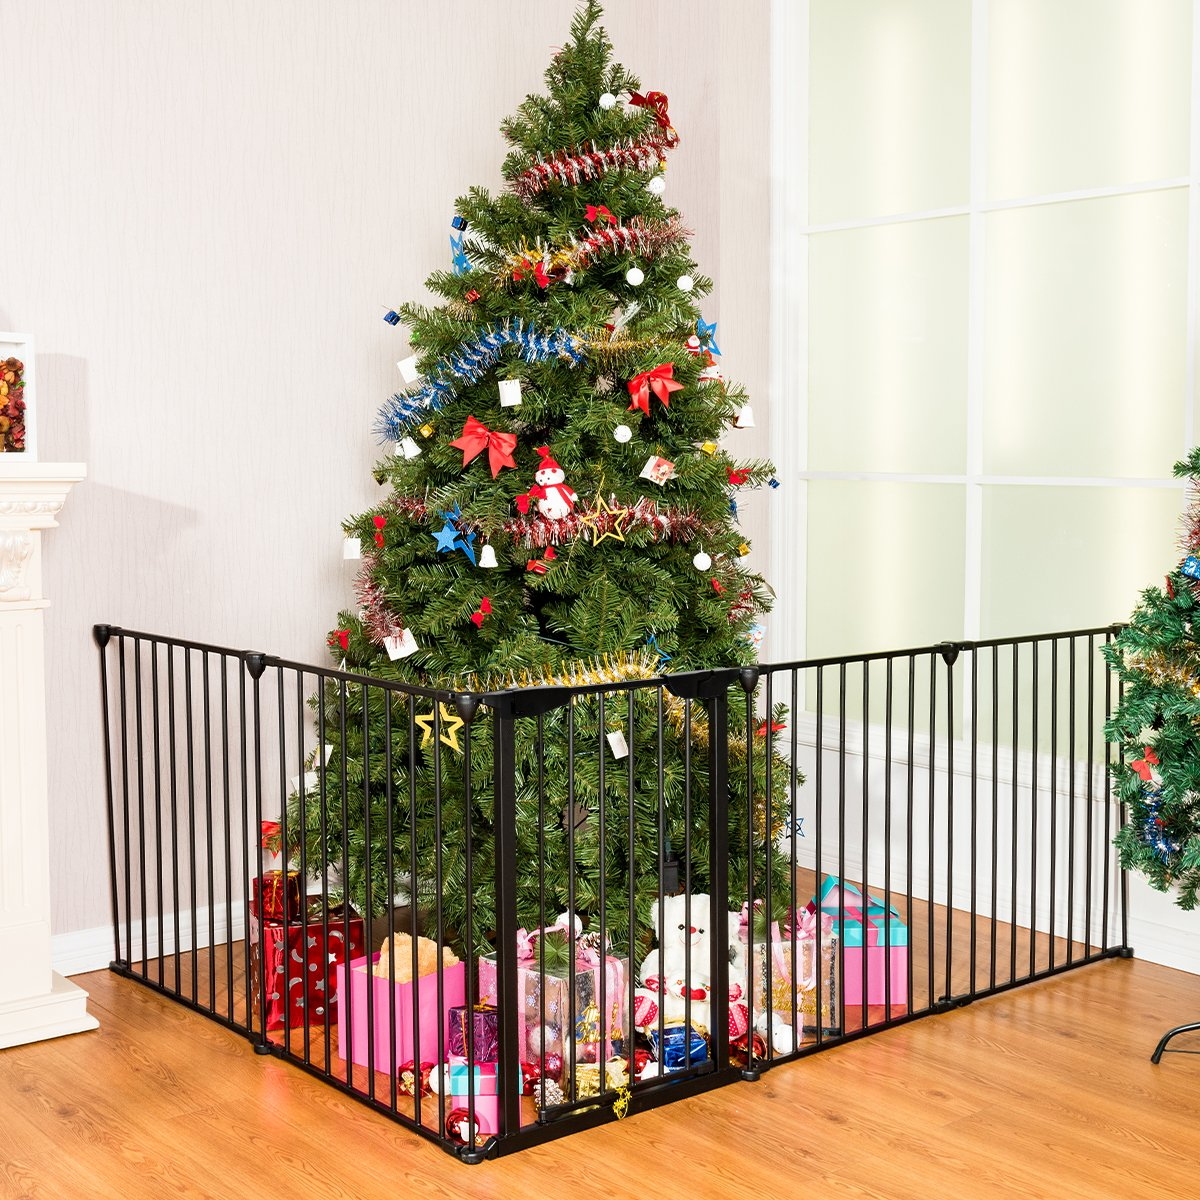 Costway Baby Safety Playpen Hearth Gate Metal Fire Gate Room Divider 305 cm Automatic Close Door Fireplace Fence